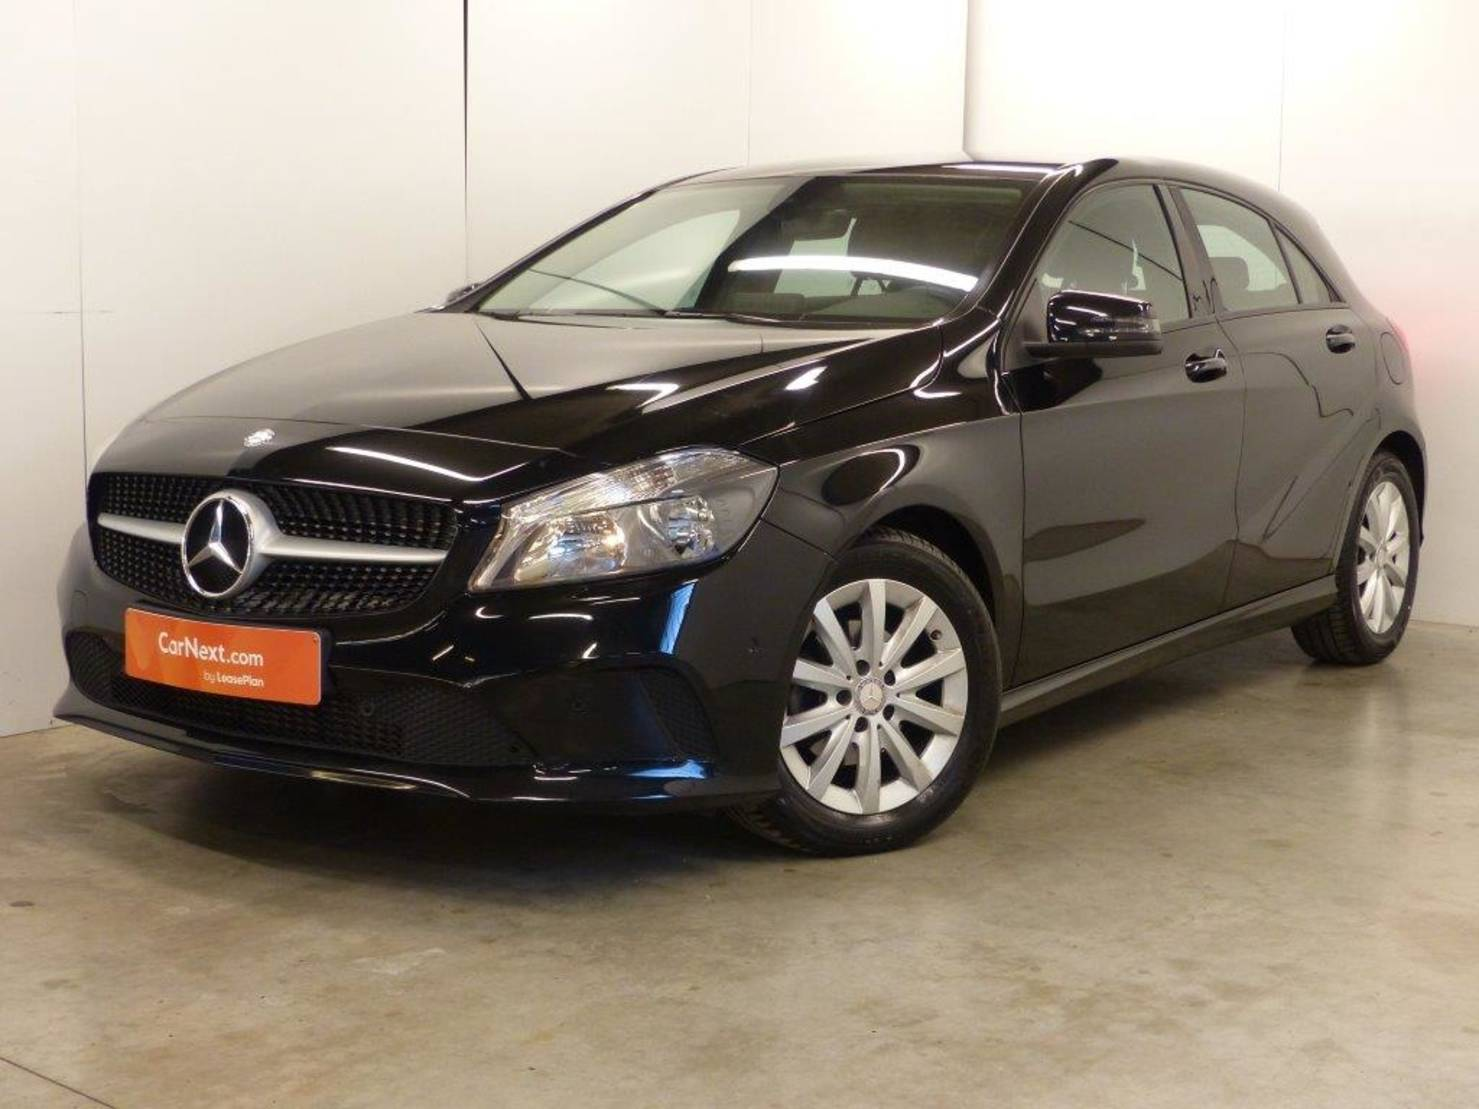 Mercedes-Benz A-Klasse 180 d BE Edition S&S GARMIN MP3 BT detail1